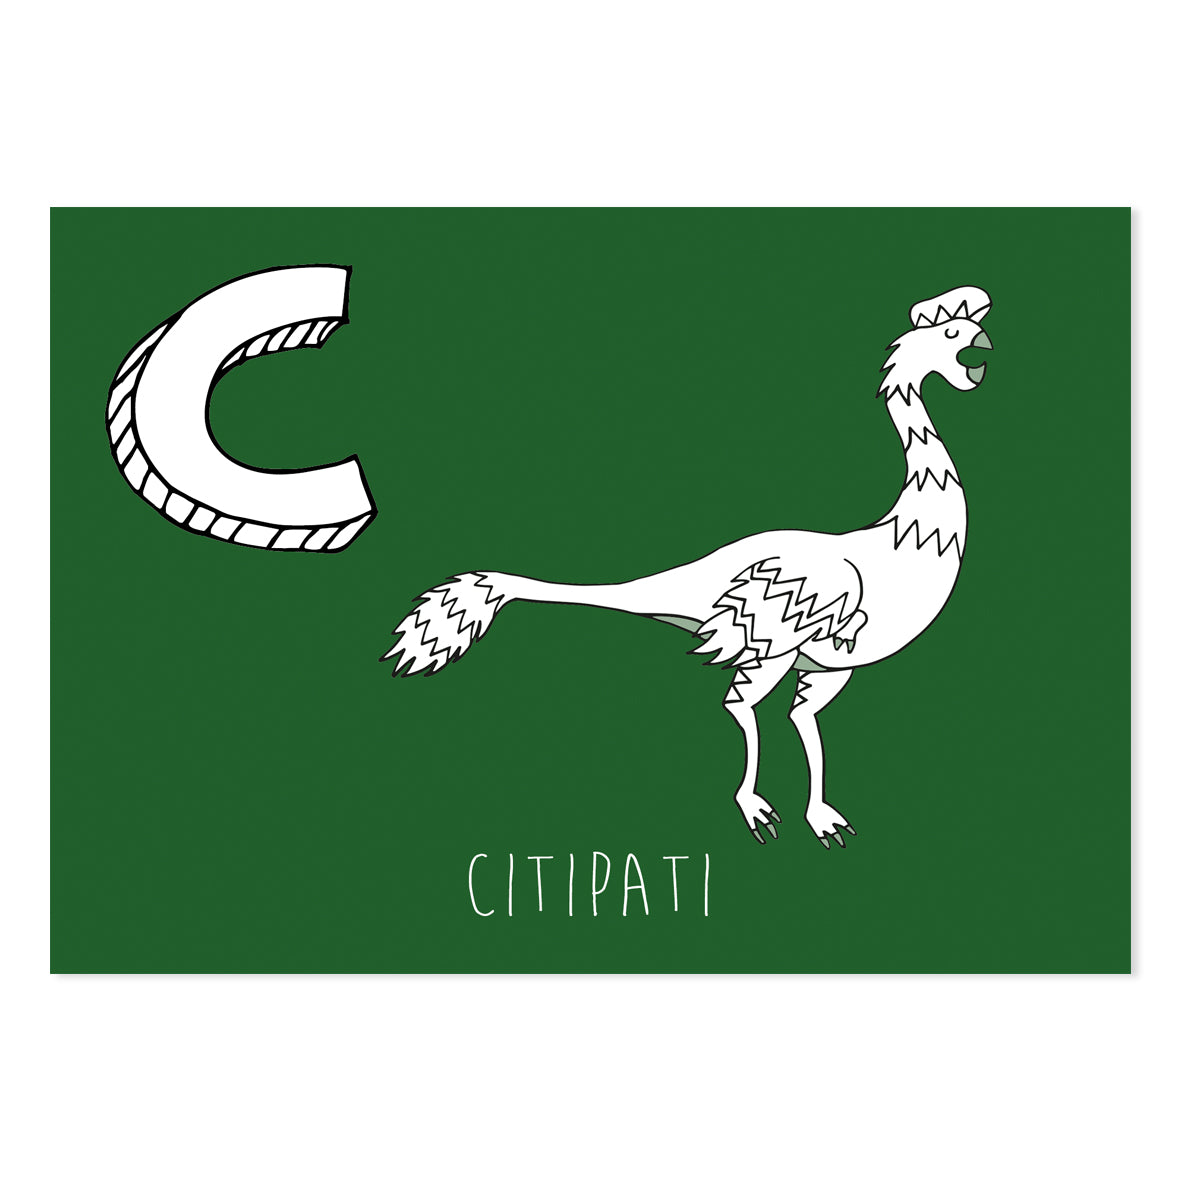 Green postcard featuring the letter C for citipati